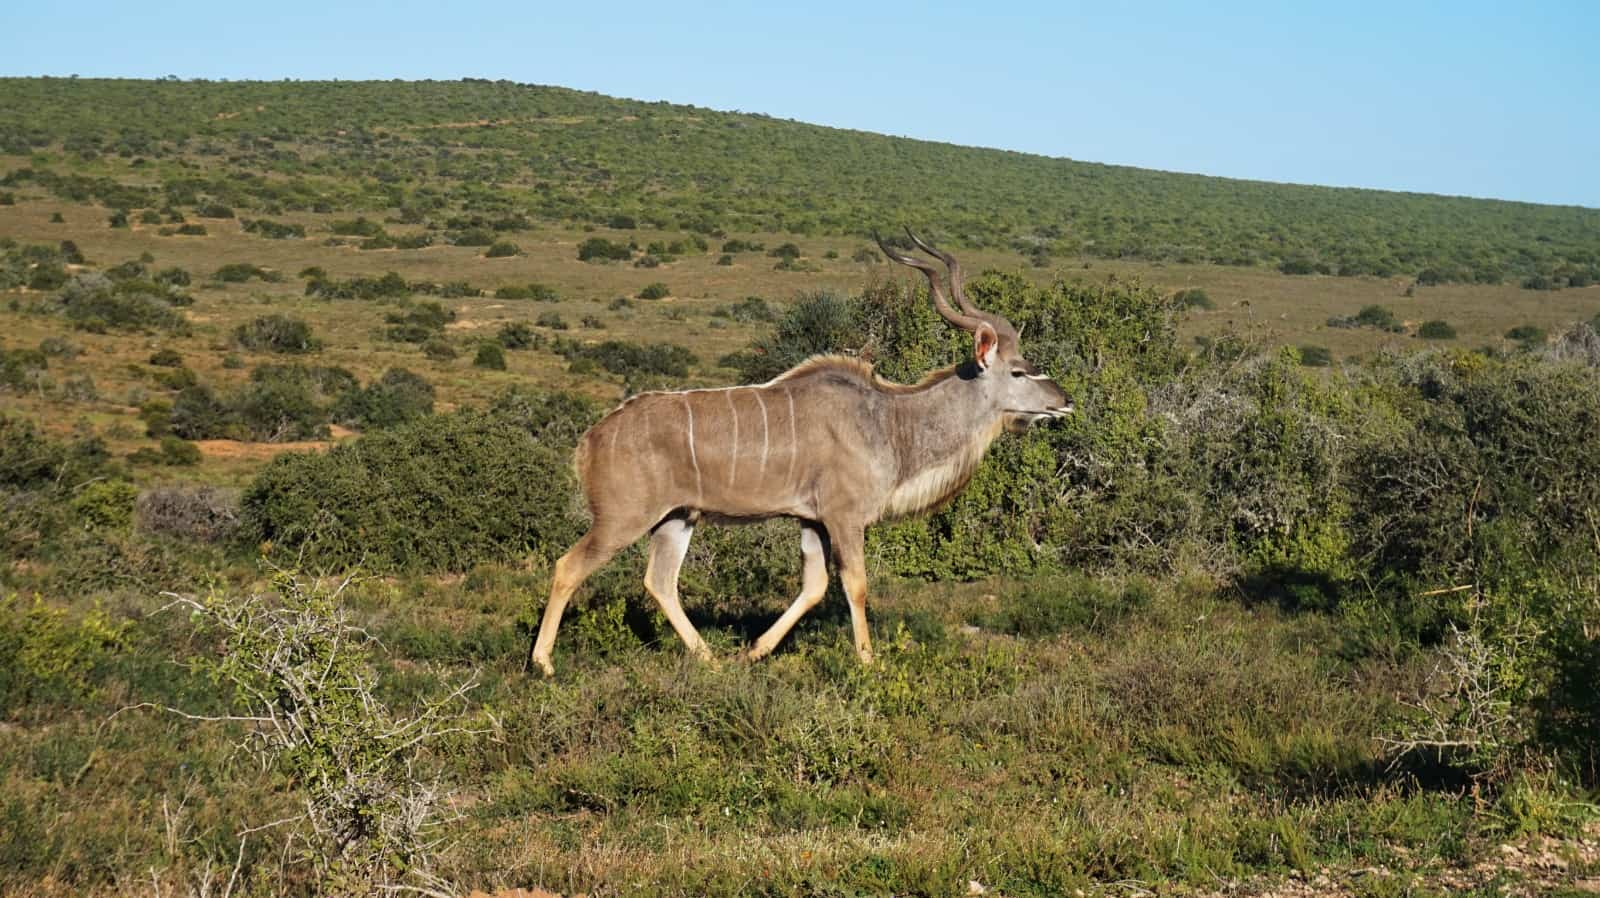 Adult male kudu at Addo Elephant National Park